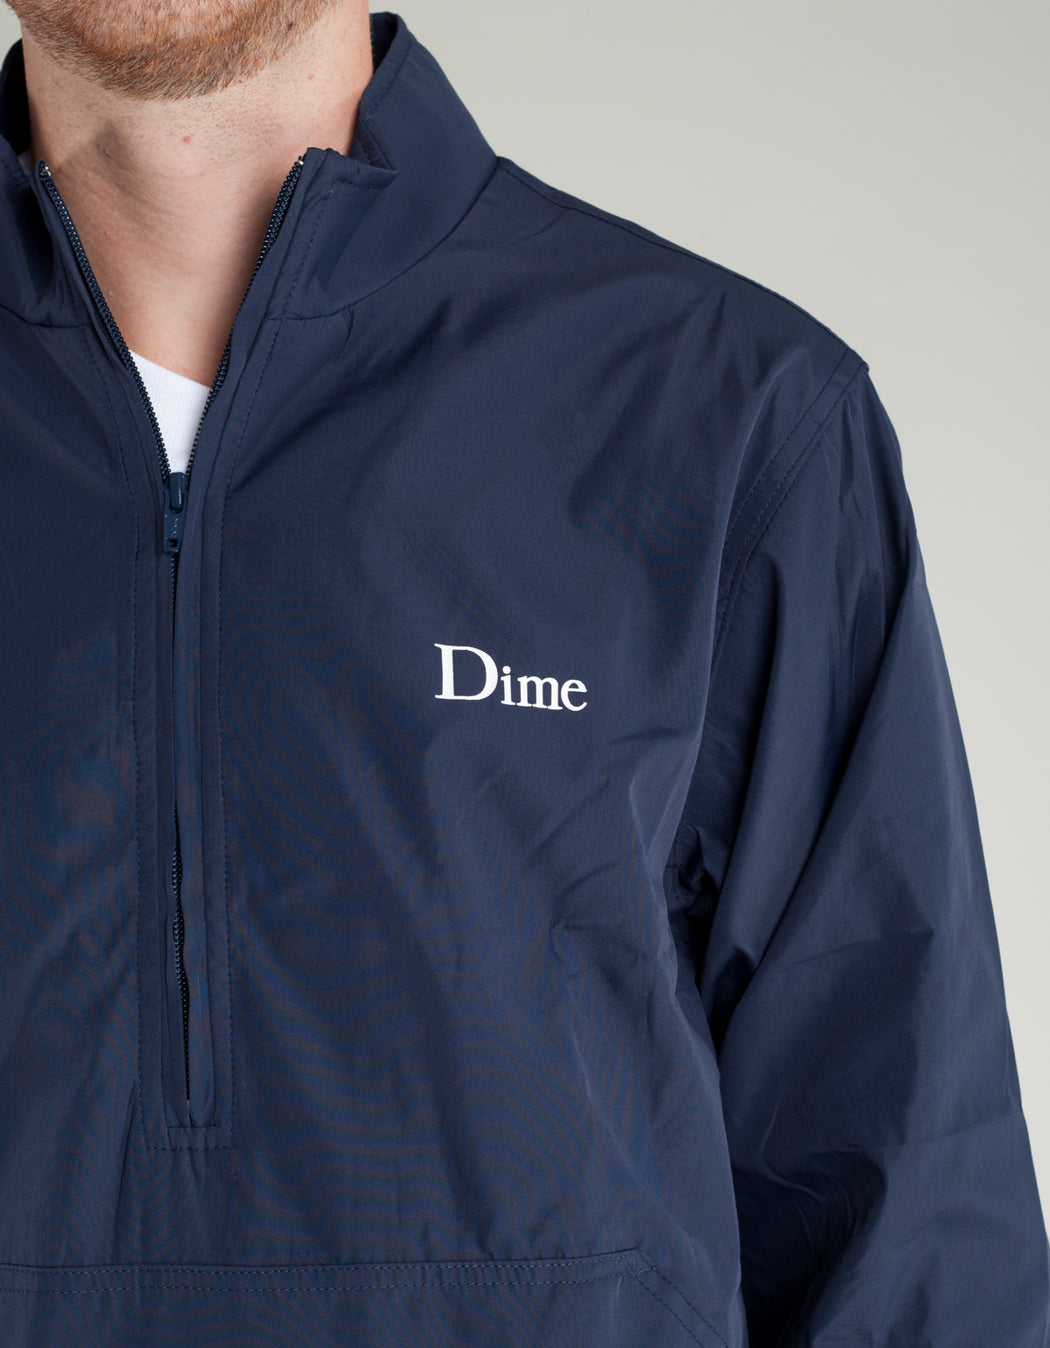 Dime Golf Jacket Navy